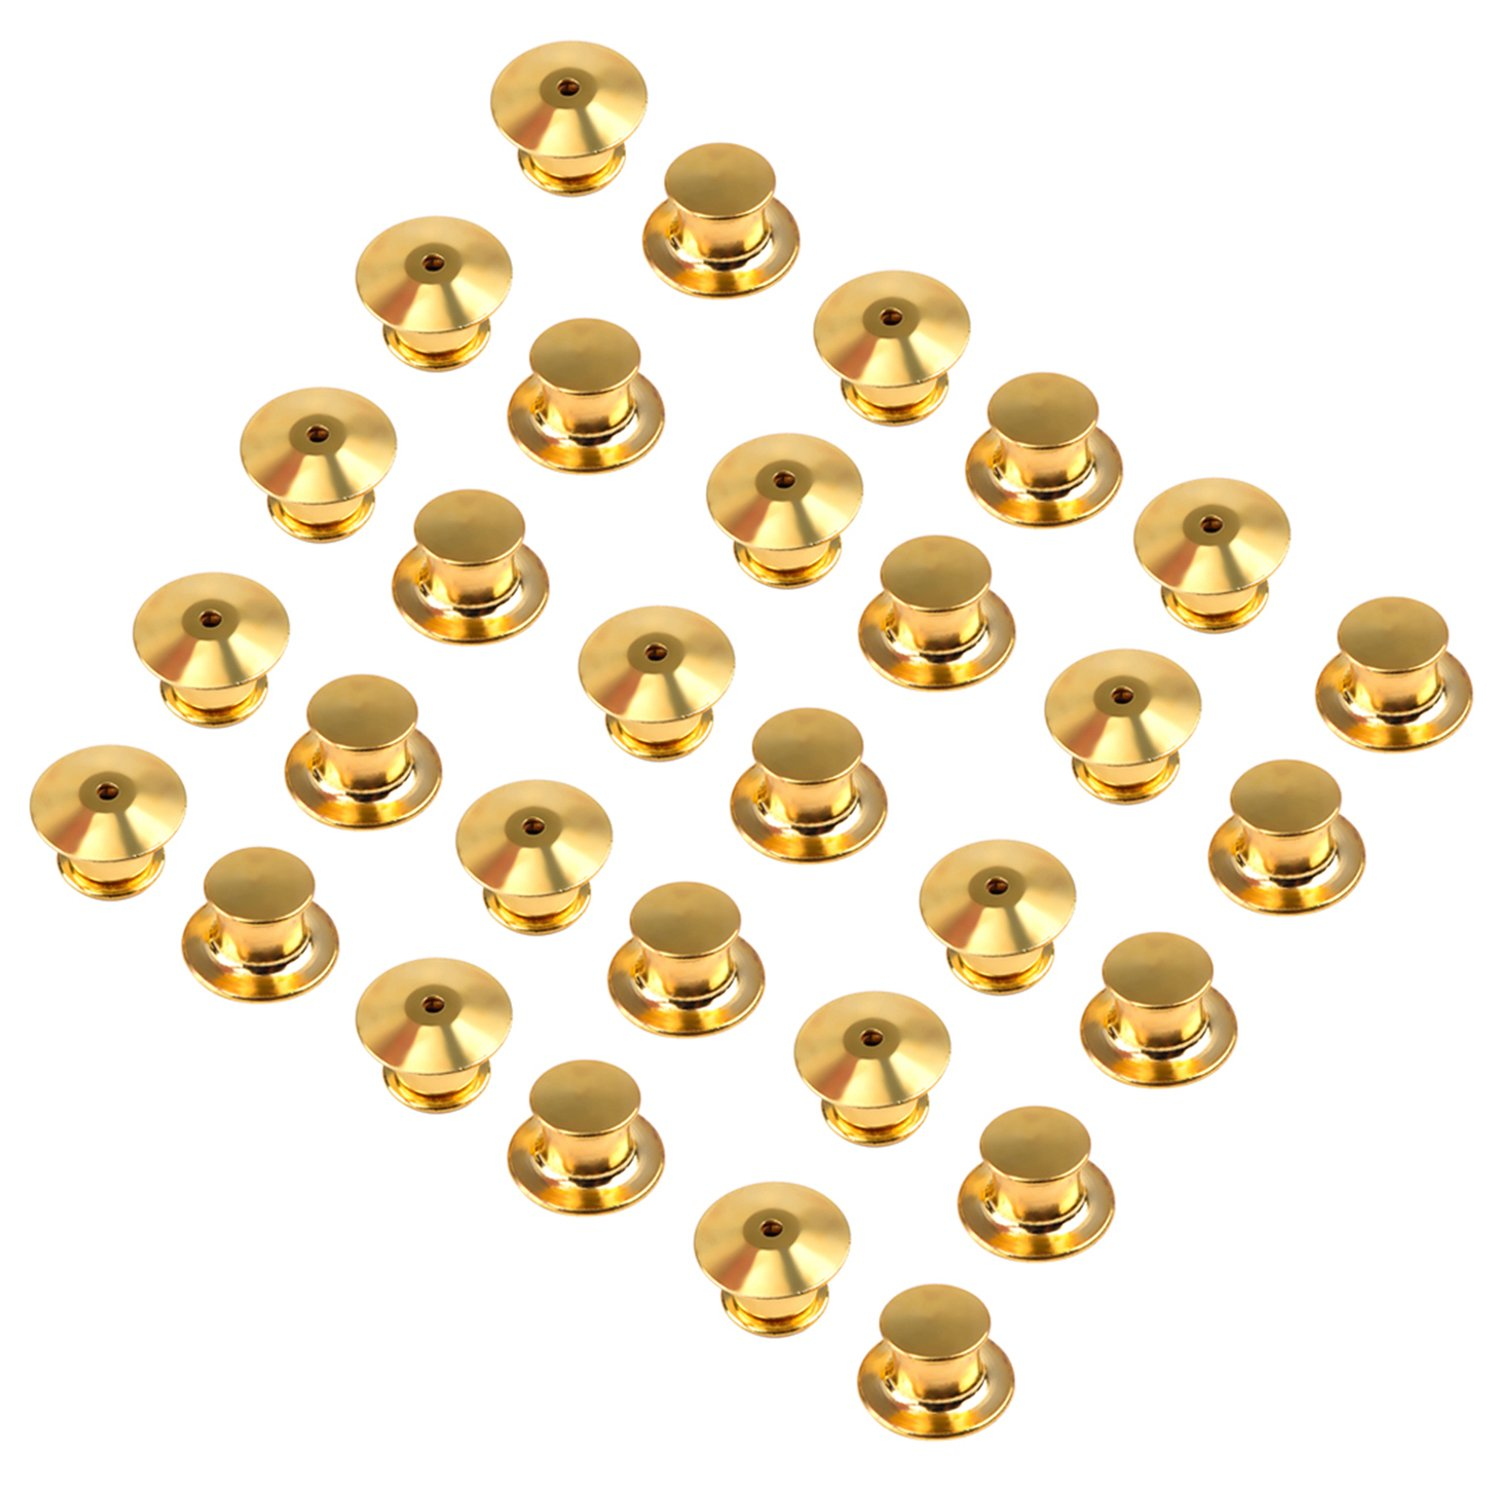 No Tool Required eBoot 30 Pieces Golden Locking Pin Keepers Backs